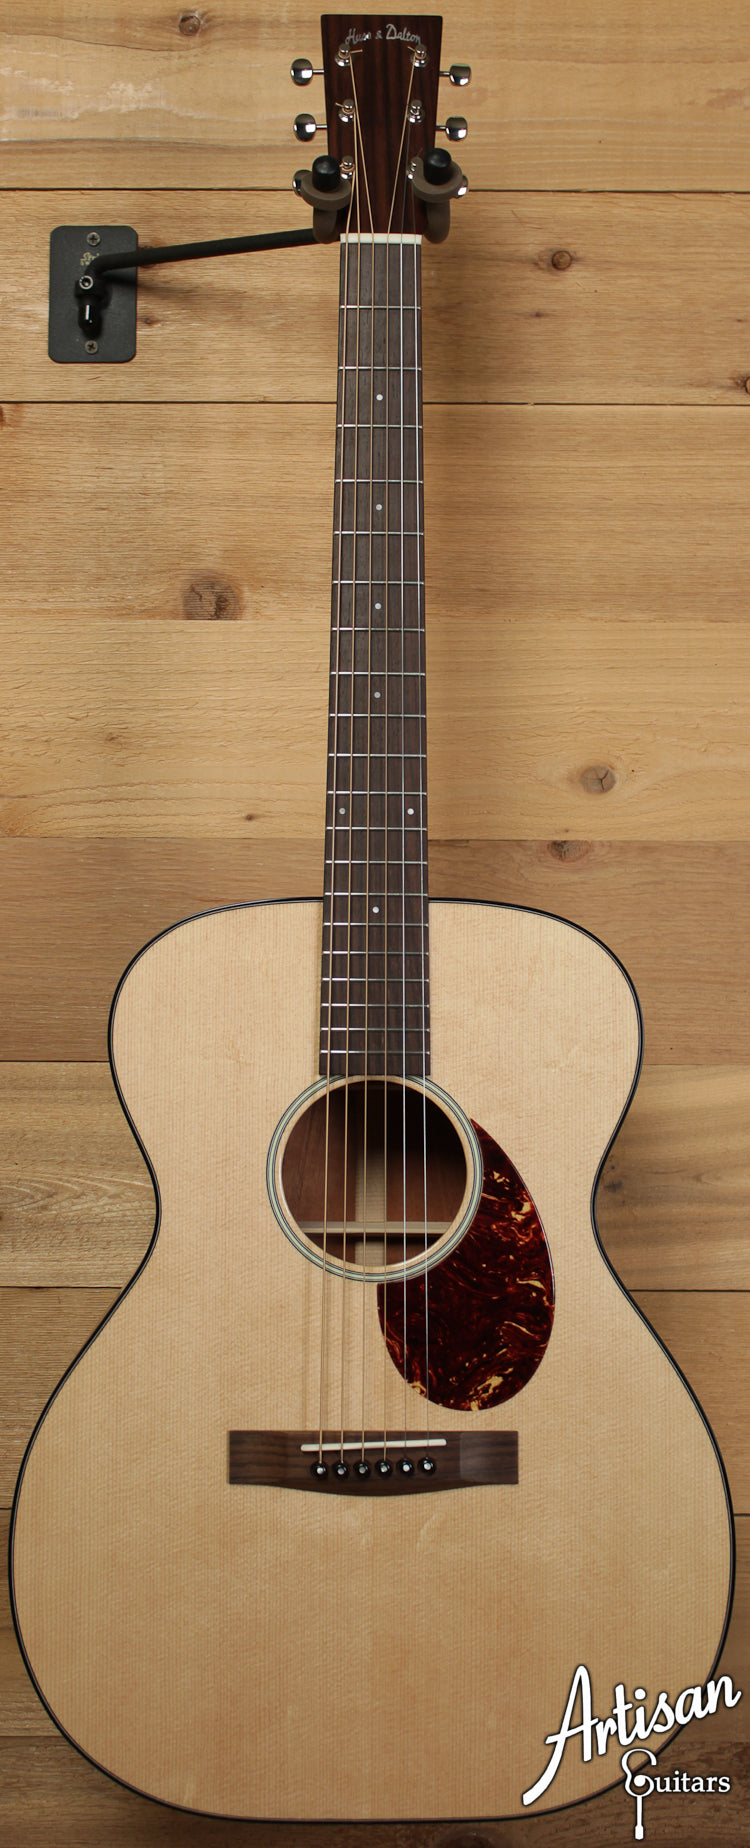 Huss and Dalton Road Edition OM Sitka Spruce and Mahogany ID-6525 - Artisan Guitars